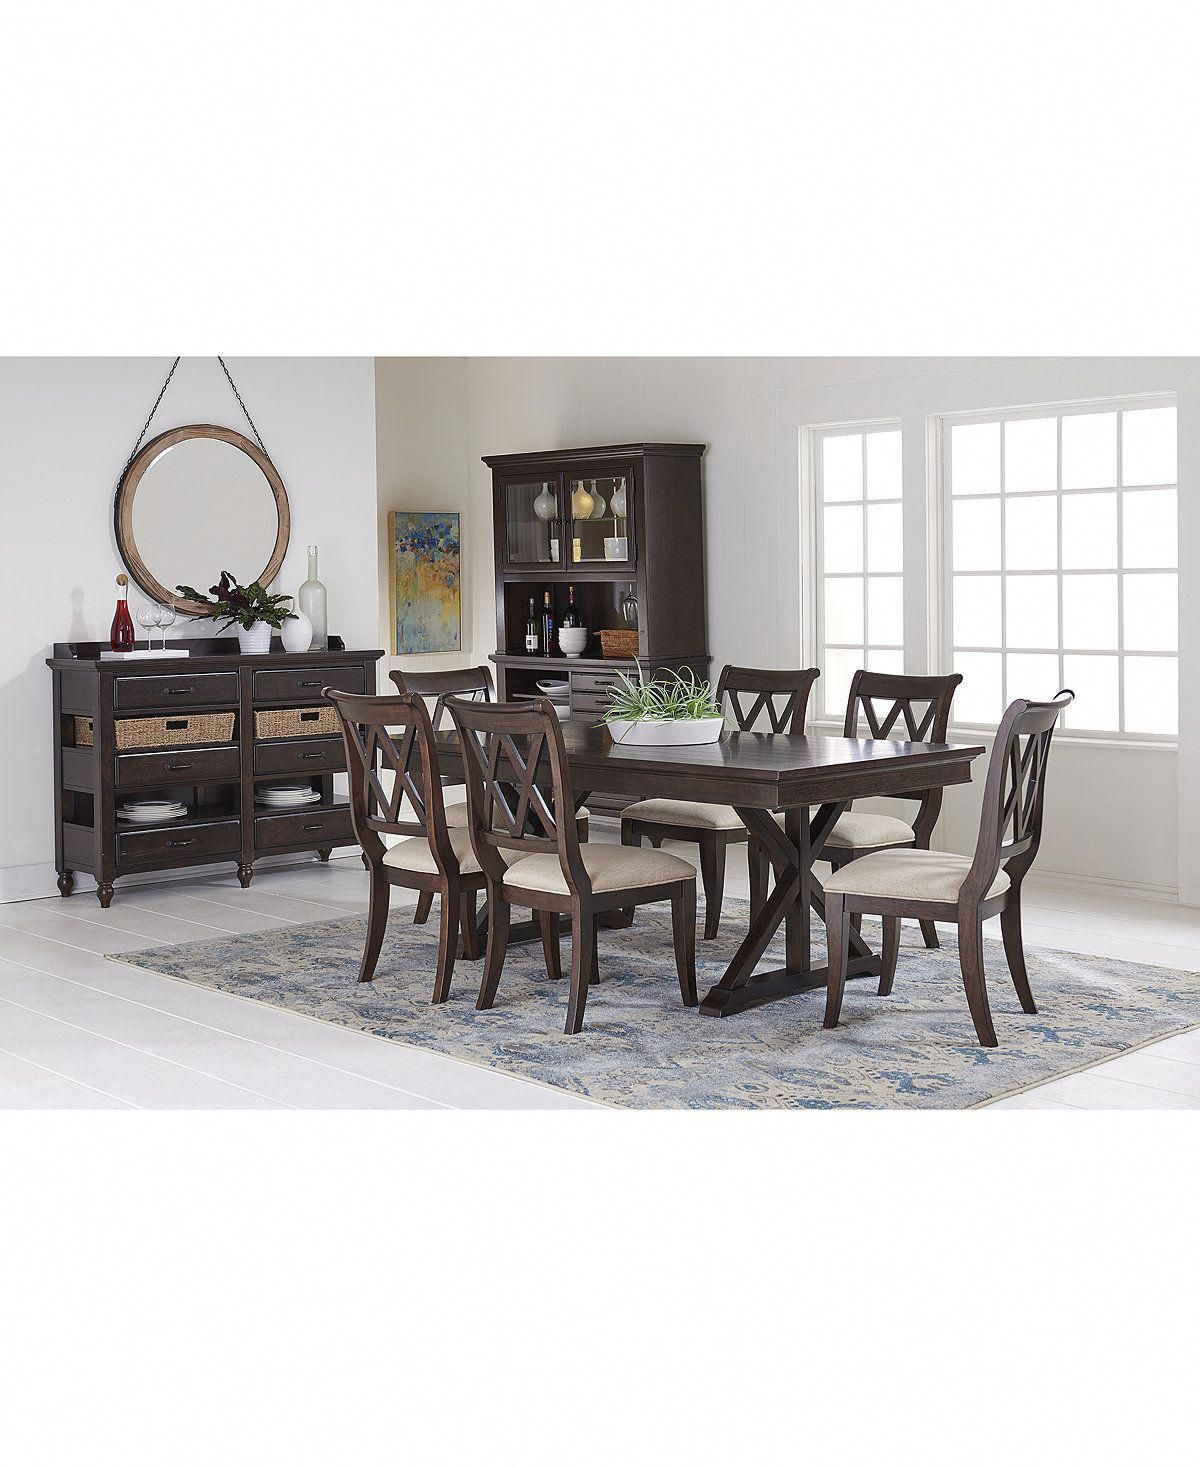 Discount Online Furniture Baker Street Dining Trestle Table Furniture Macy S